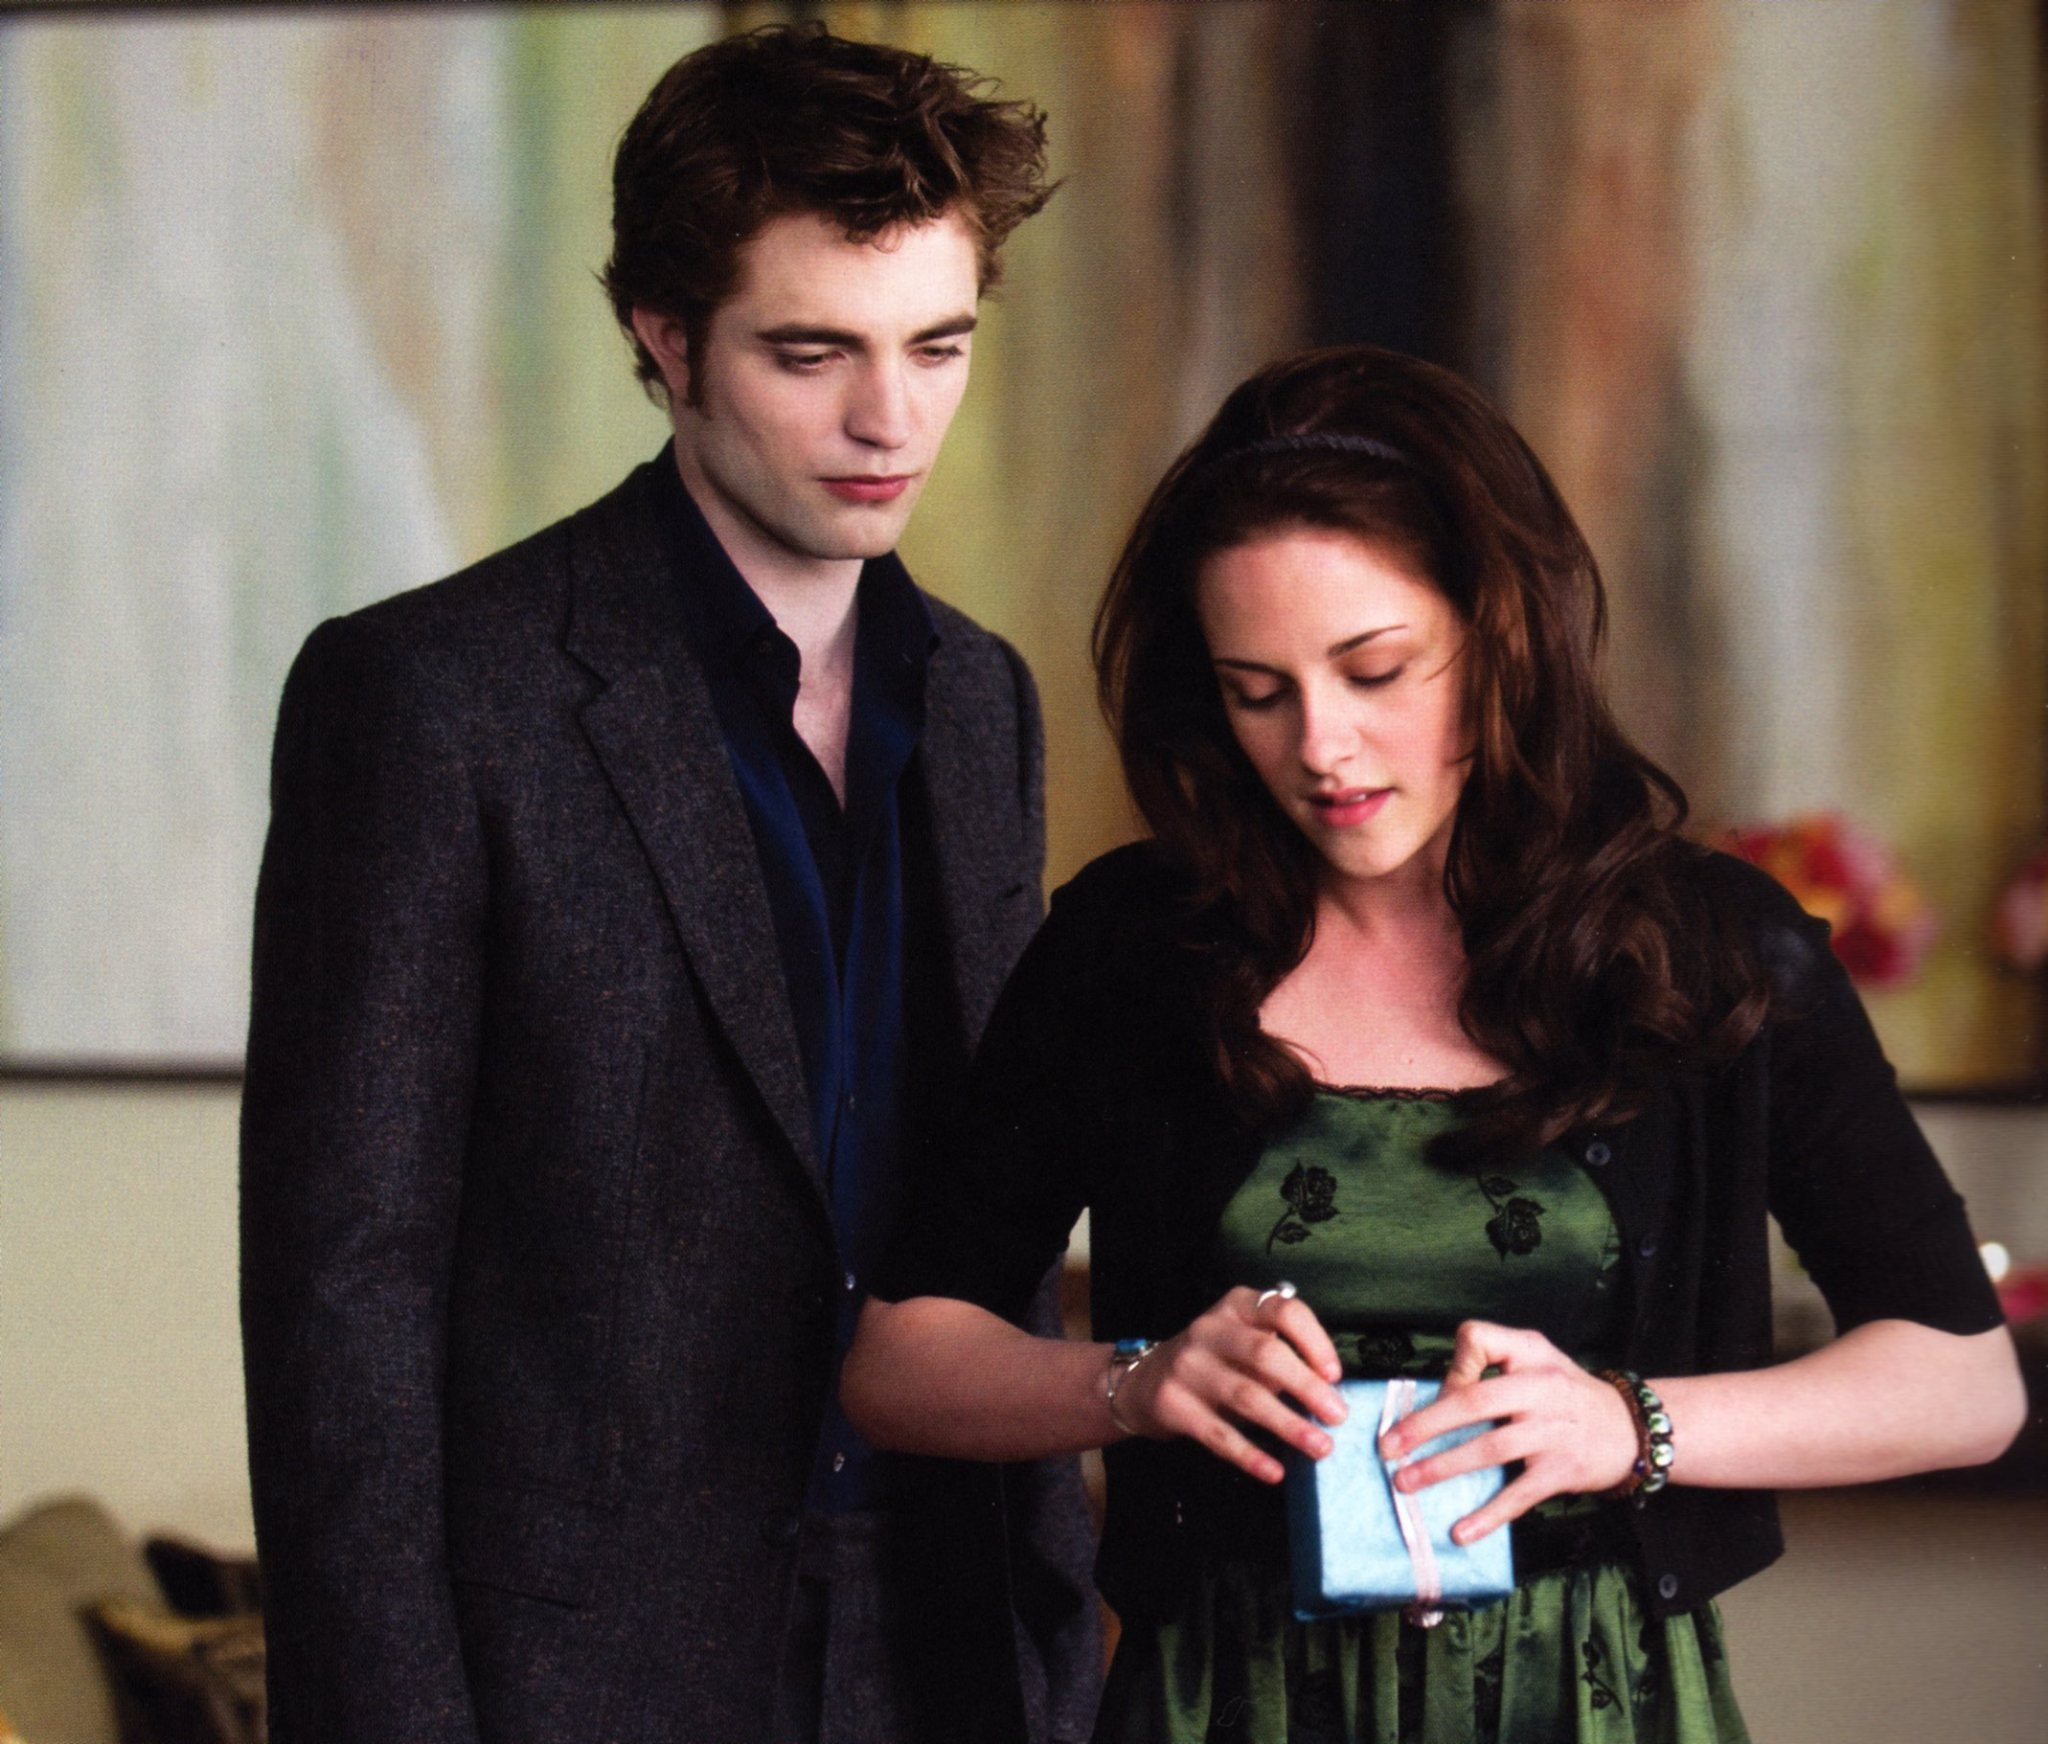 New Moon Movie Companion TOTALLY HQ!